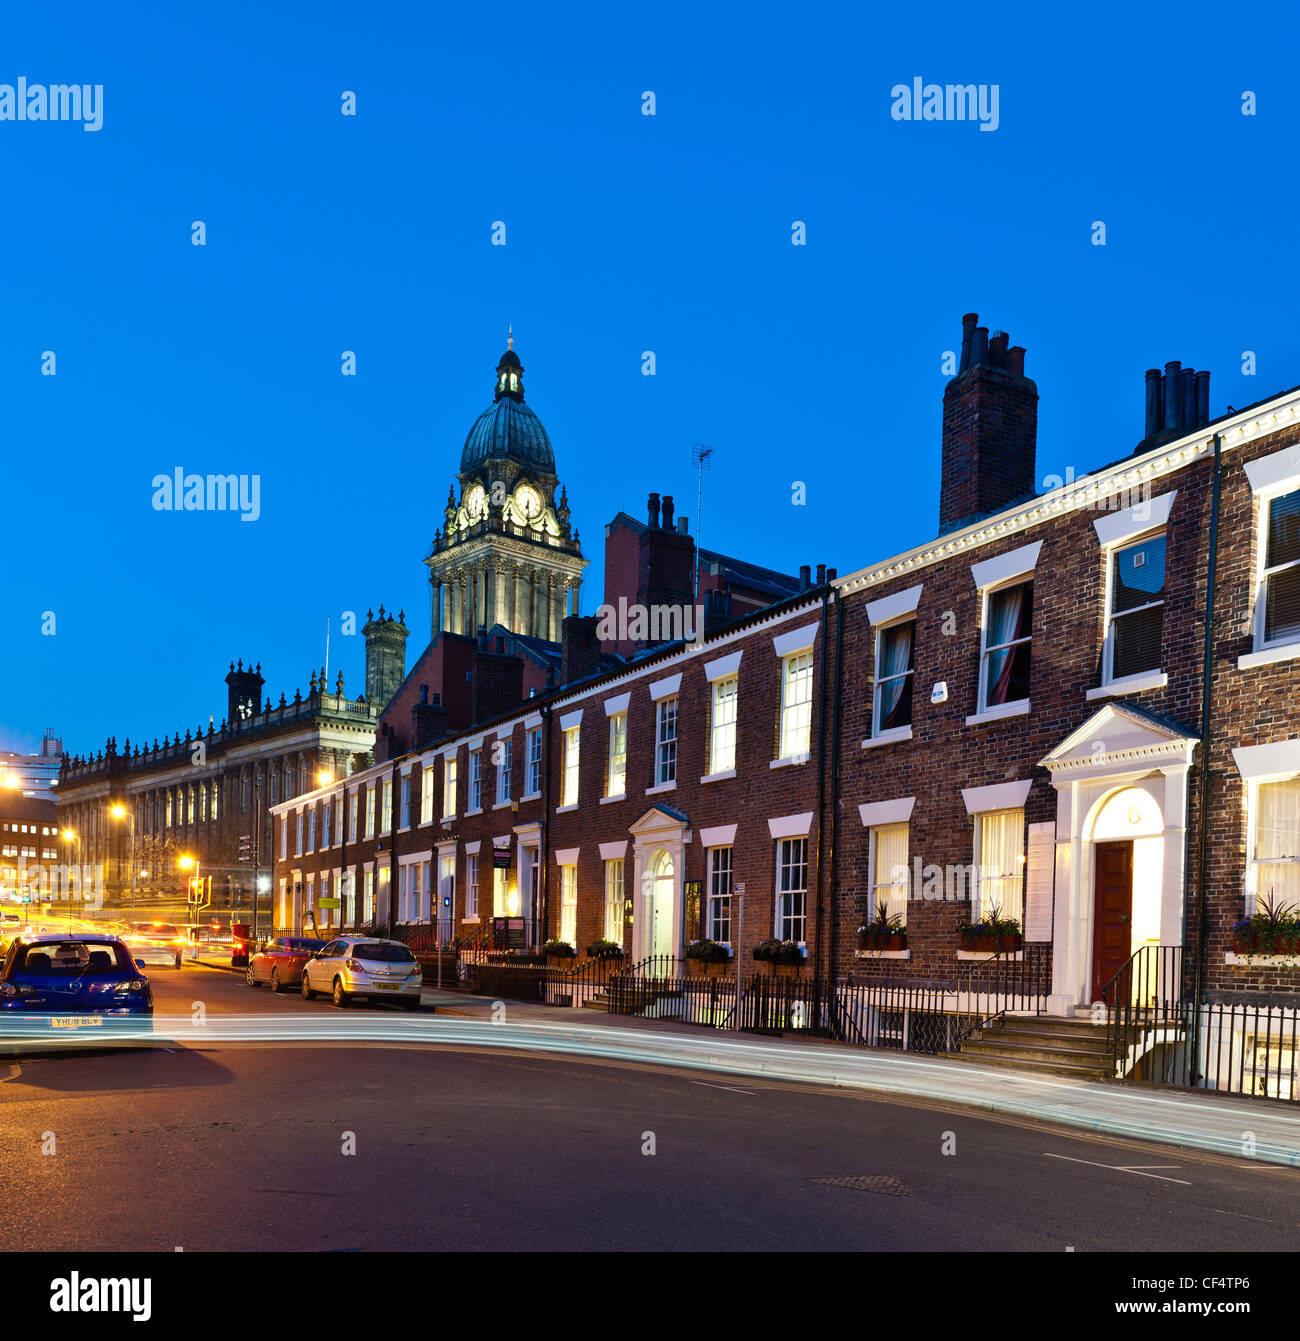 Leeds Town Hall and Georgian terrace houses at night with light trail of passing car. - Stock Image